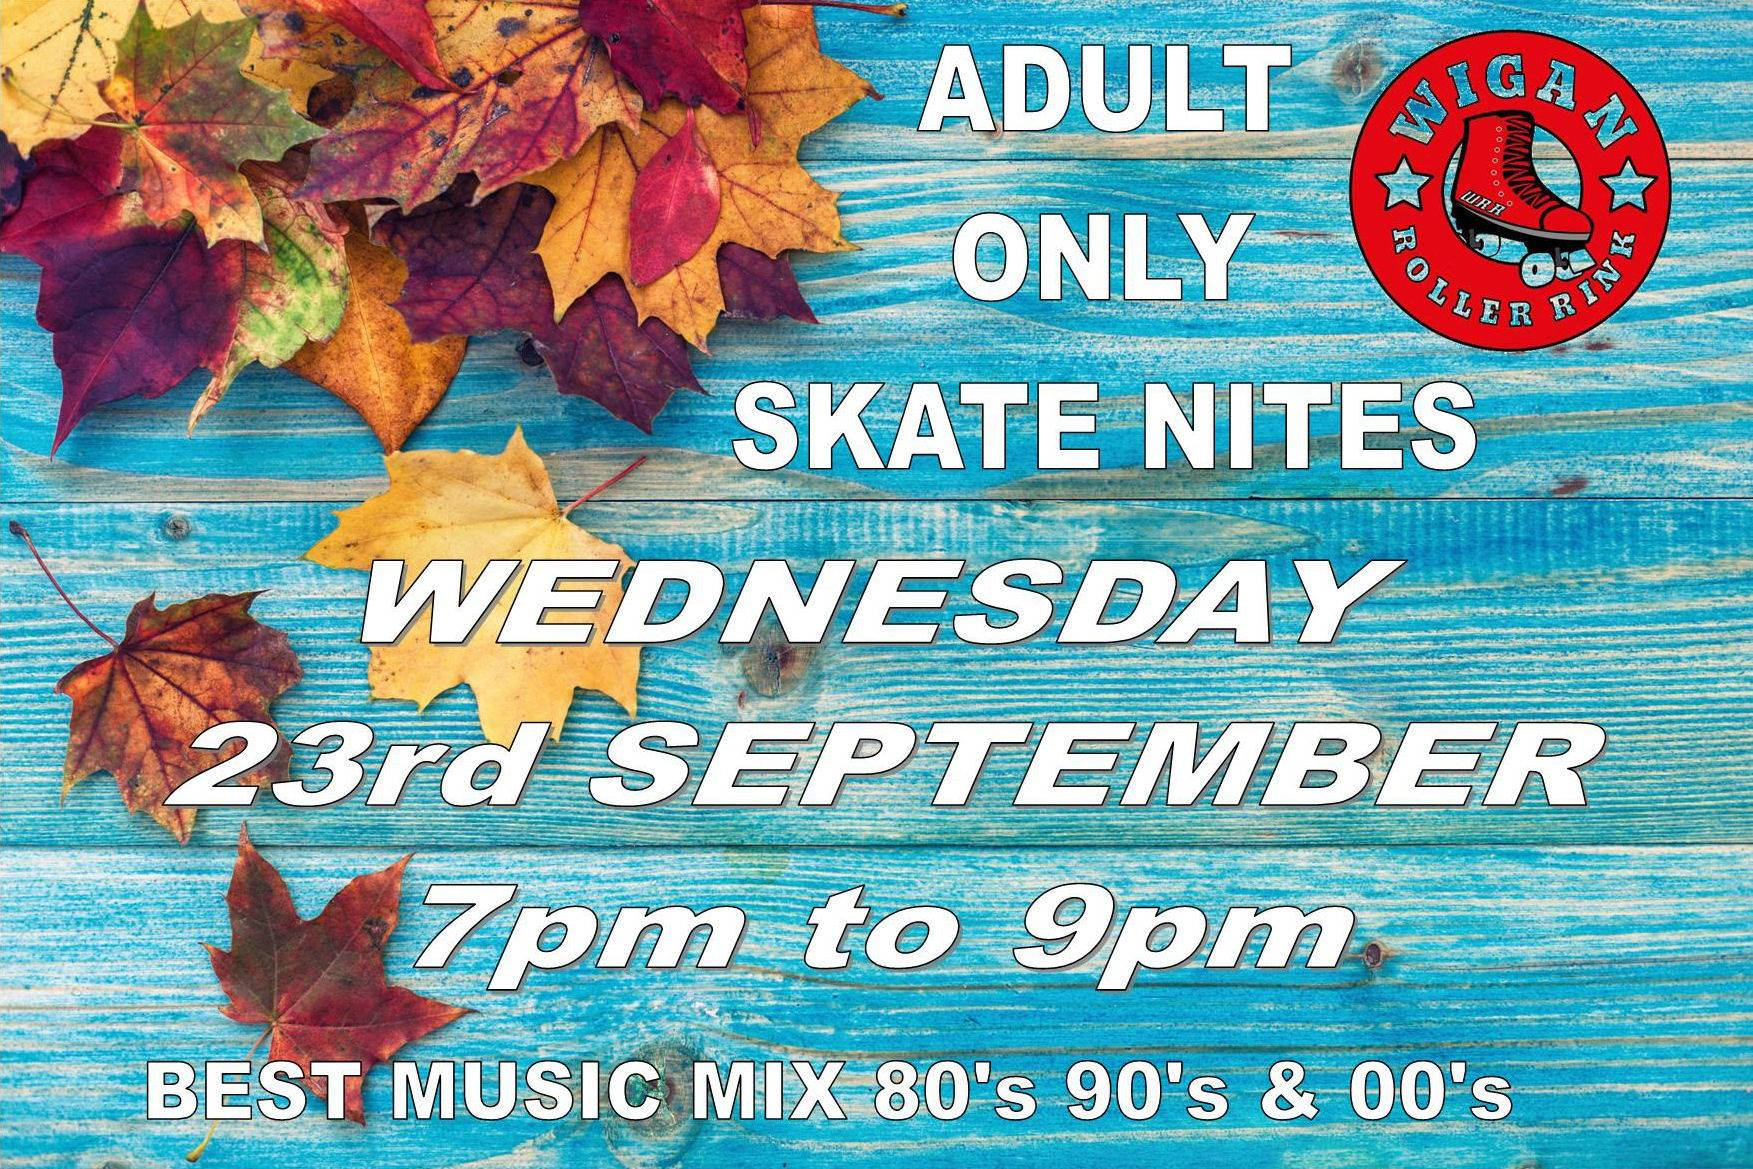 OVER 18'S ONLY WEDS 23RD SEPT  7PM - 9PM